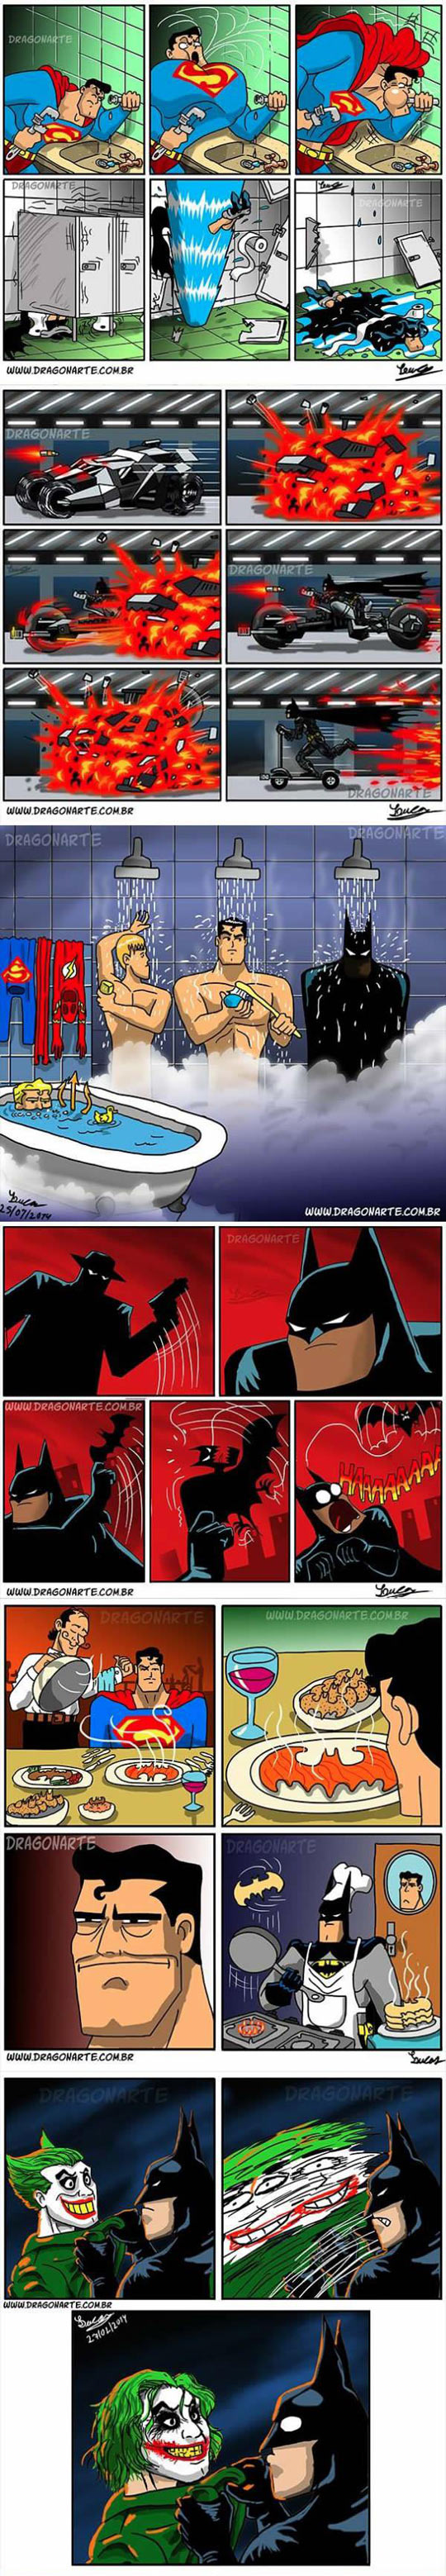 funny-Batman-Superman-comic-collection